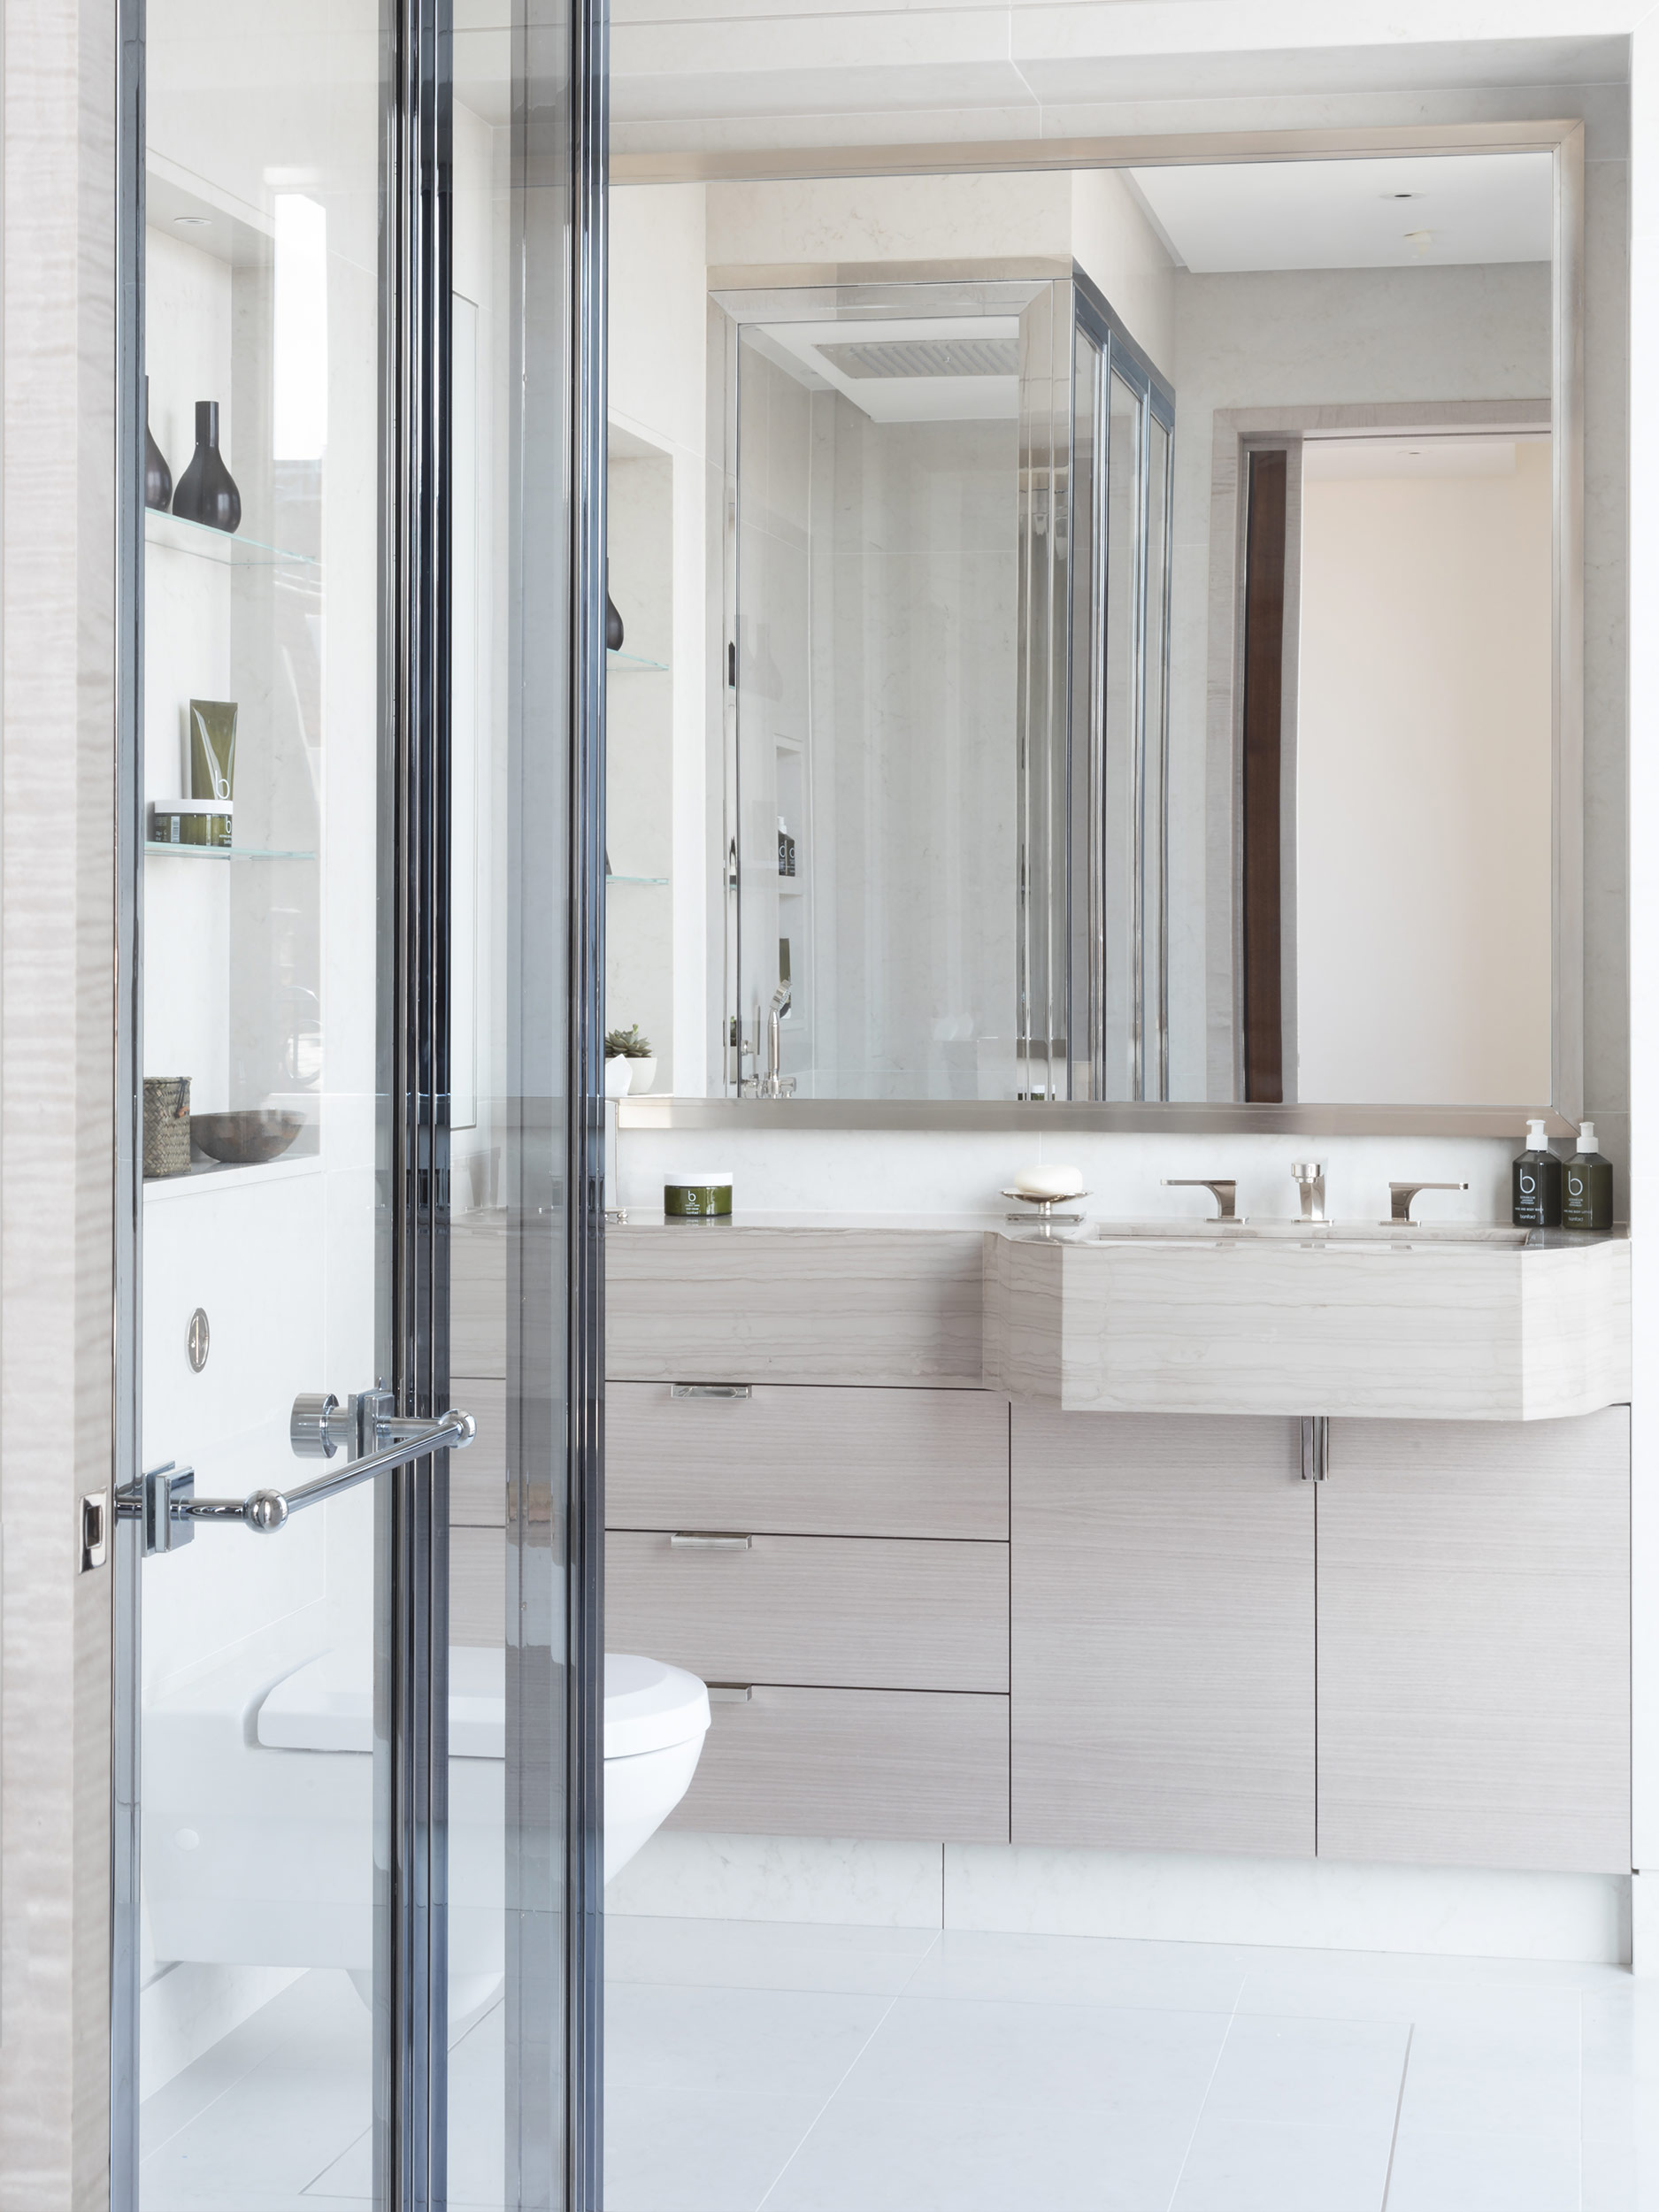 West One Bathrooms Case Studies Luxlo Penthouse Guest Bath 1b